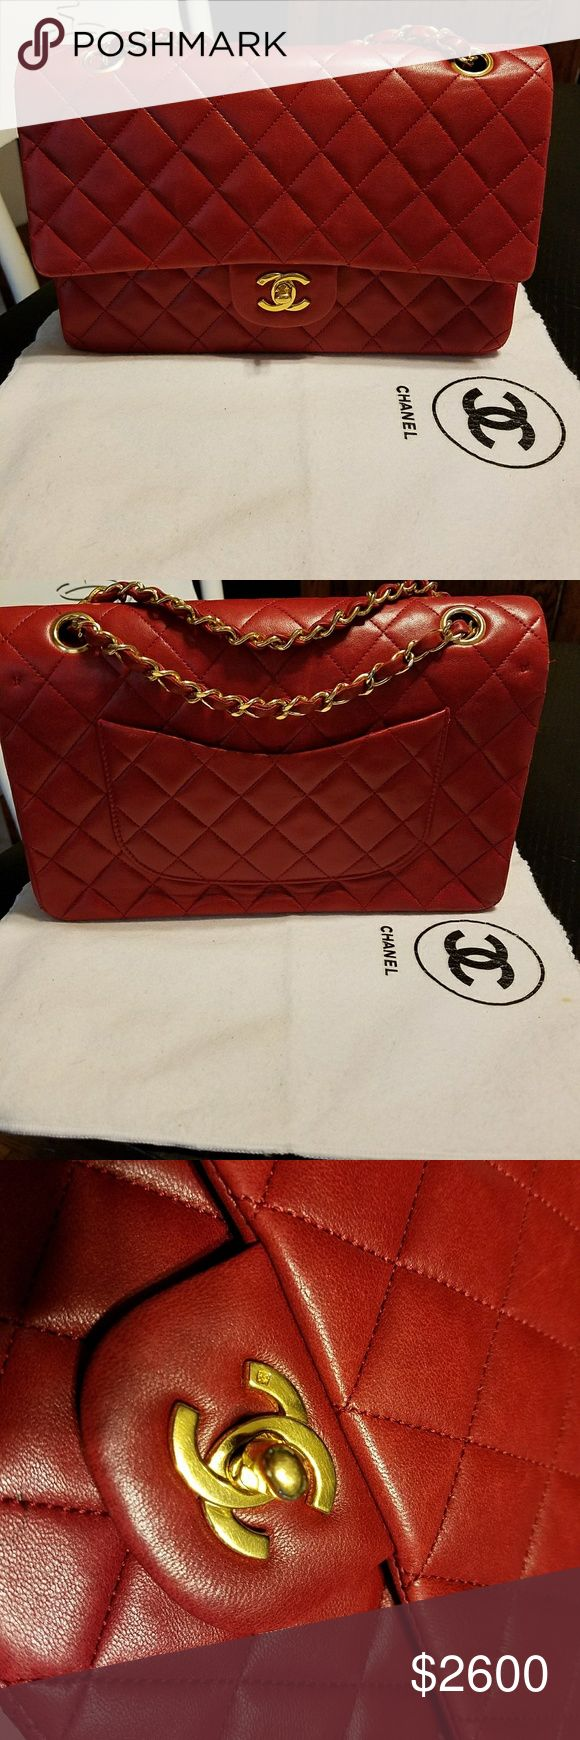 Red Chanel Double Flap Bag Medium sized beautiful red Chanel Double Flap Bag with 24k gold hardware. Red is a must for any Chanel admirer! Has a few hairline scratches throughout and some minor corner rubs see photos. Otherwise is good condition! Comes with dust bag.   Better price via paypel! CHANEL Bags